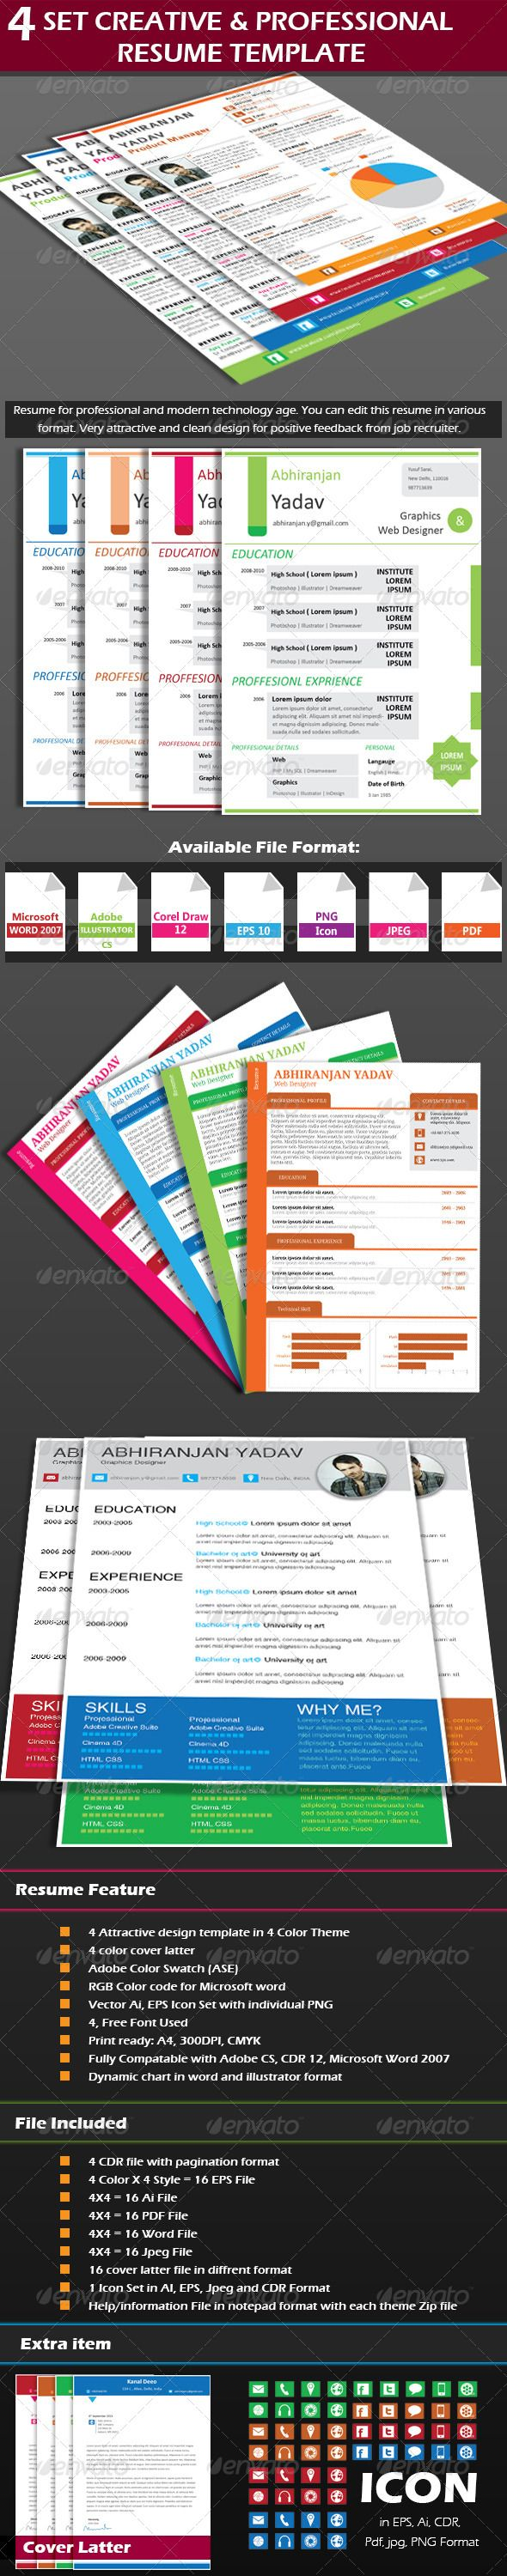 best images about computer programs cover letter 4 set creative professional resume template